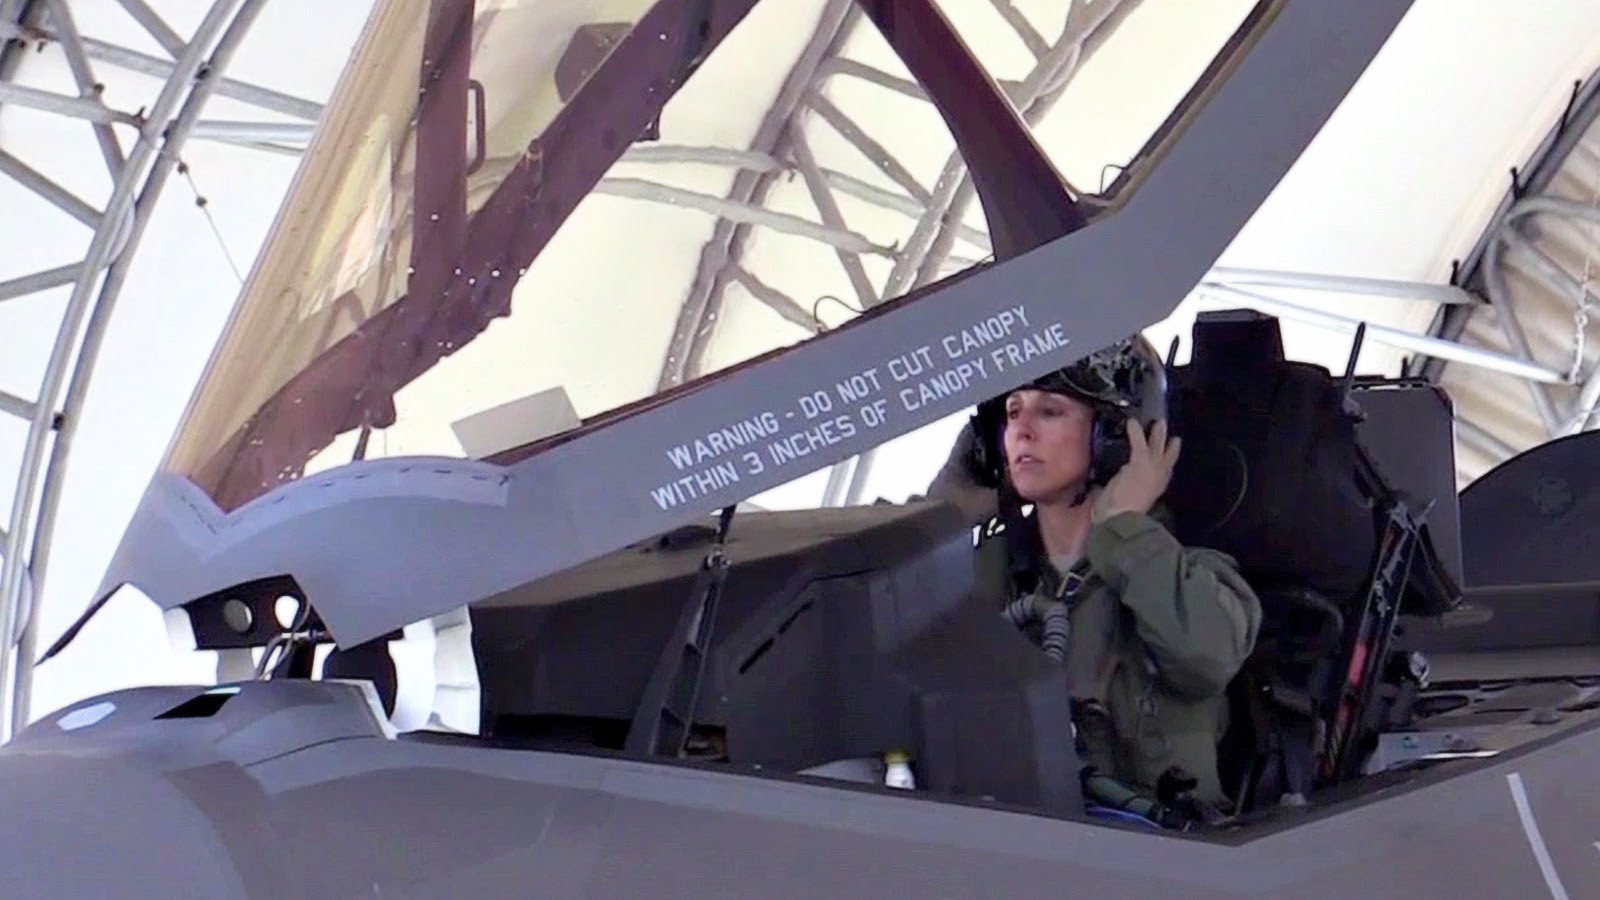 https://theaviationist.com/wp-content/uploads/2017/03/F-35-female-pilot-2.jpg